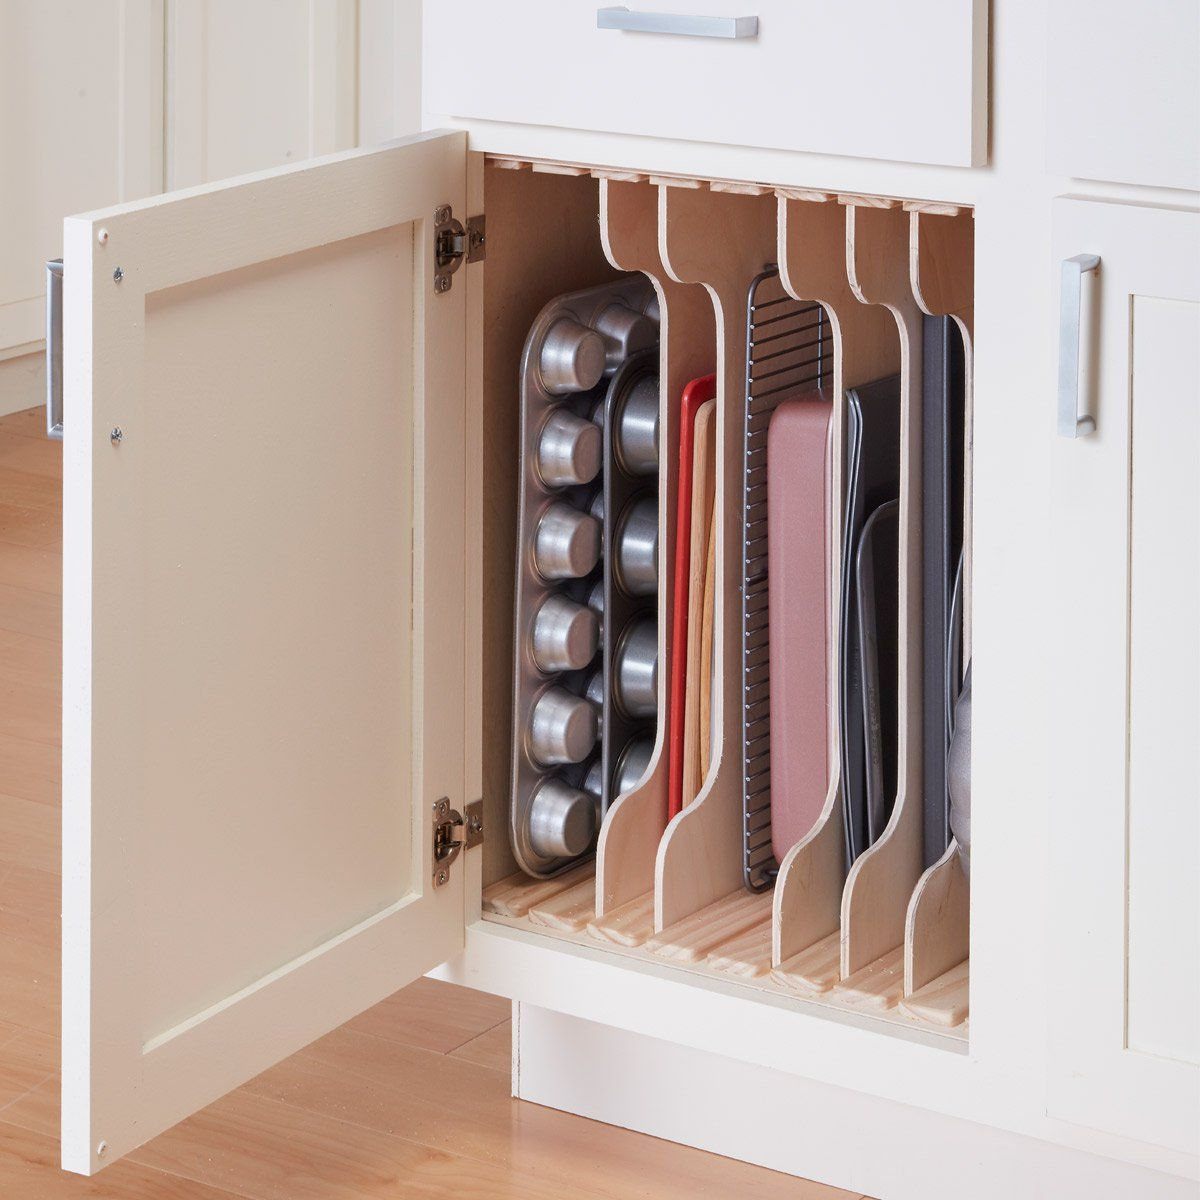 Kitchen Cabinet Organizers: DIY Dividers #kitchenremodelideas